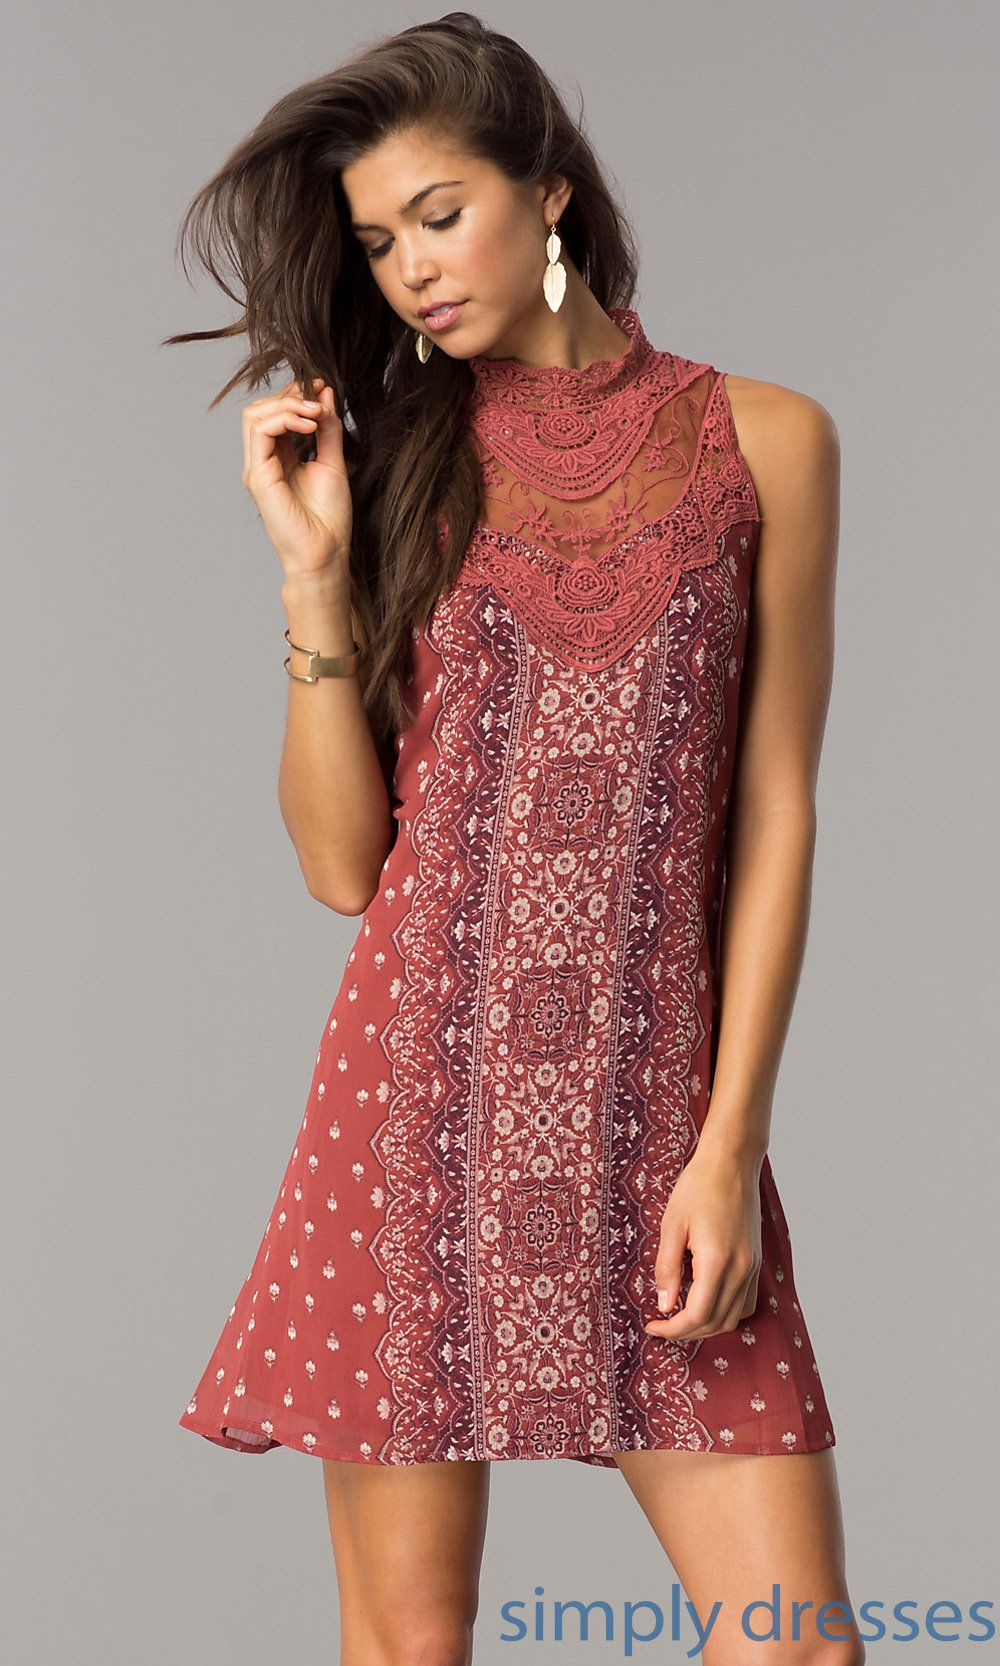 Casual short chiffon print shift dress with lace lace applique